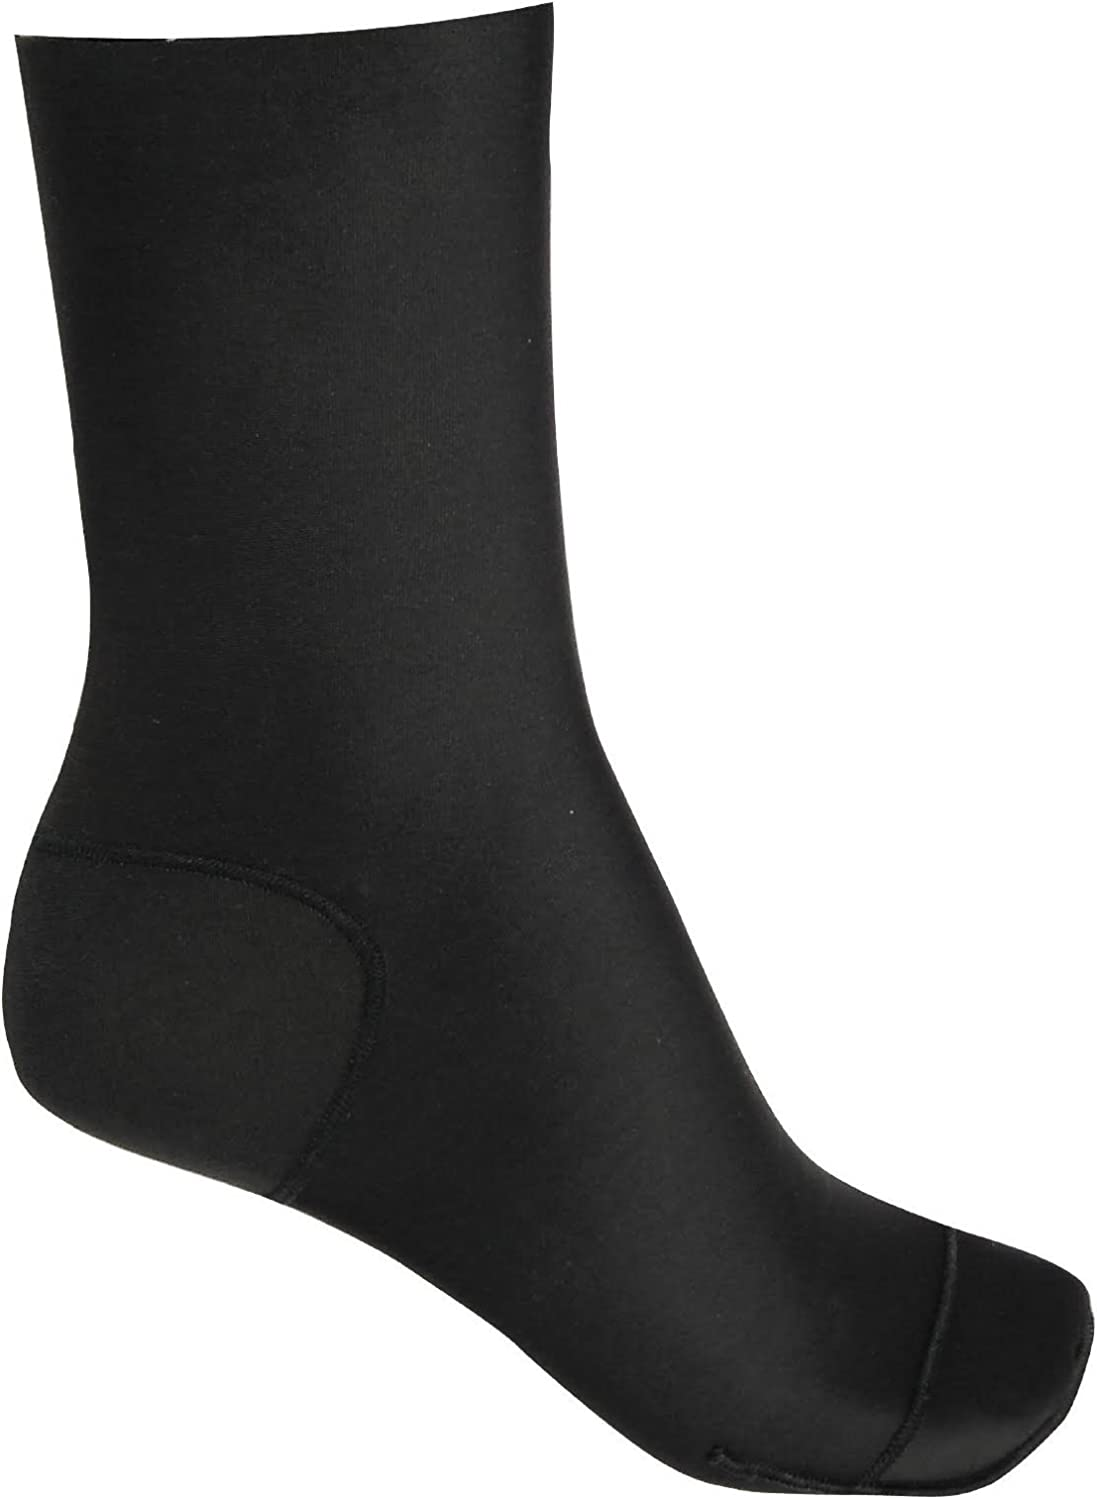 Calcetines para hombre y mujer ArmaSkin Extreme Anti-Blister